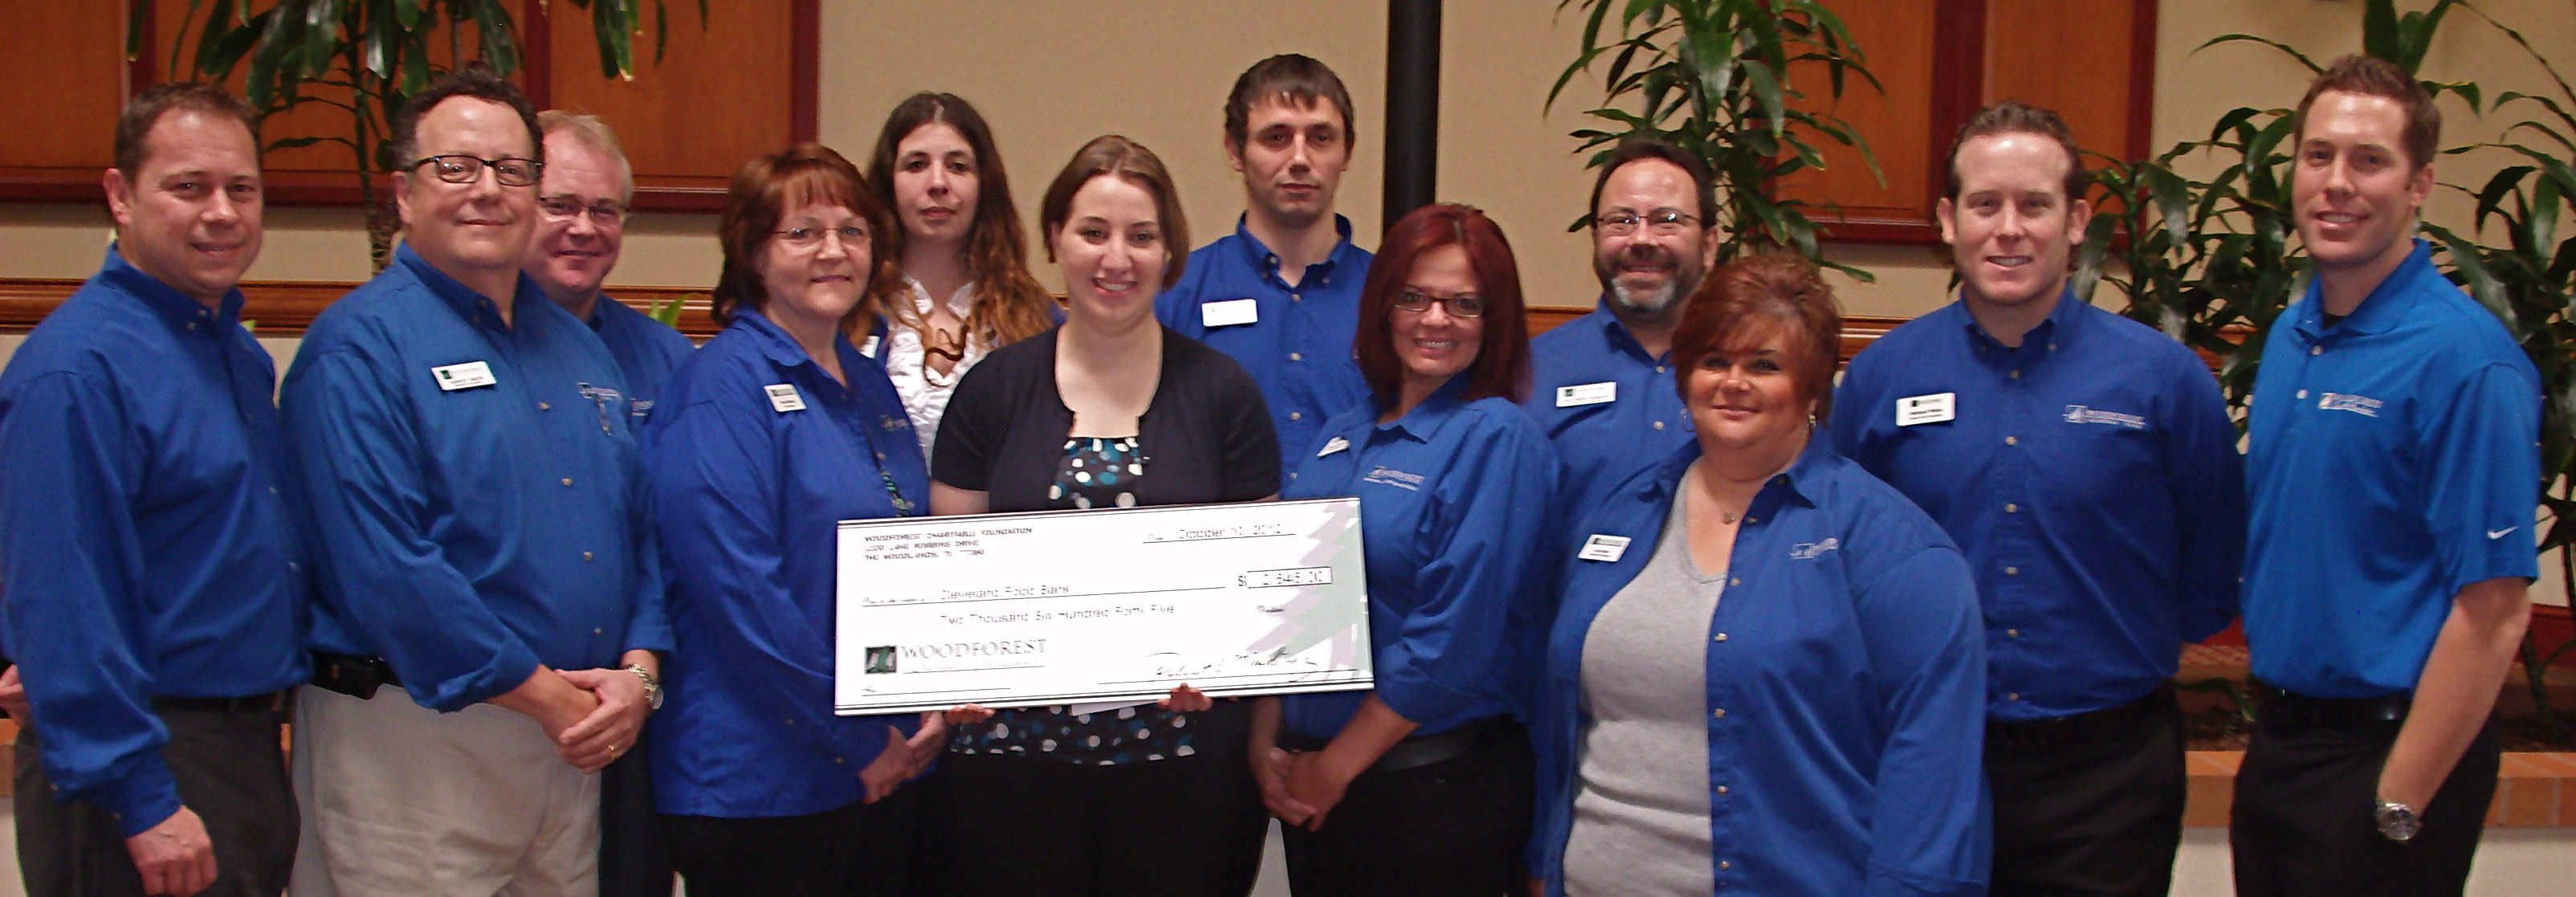 Second Harvest Food Bank of North Central Ohio receives $1,135 donation from WCF.